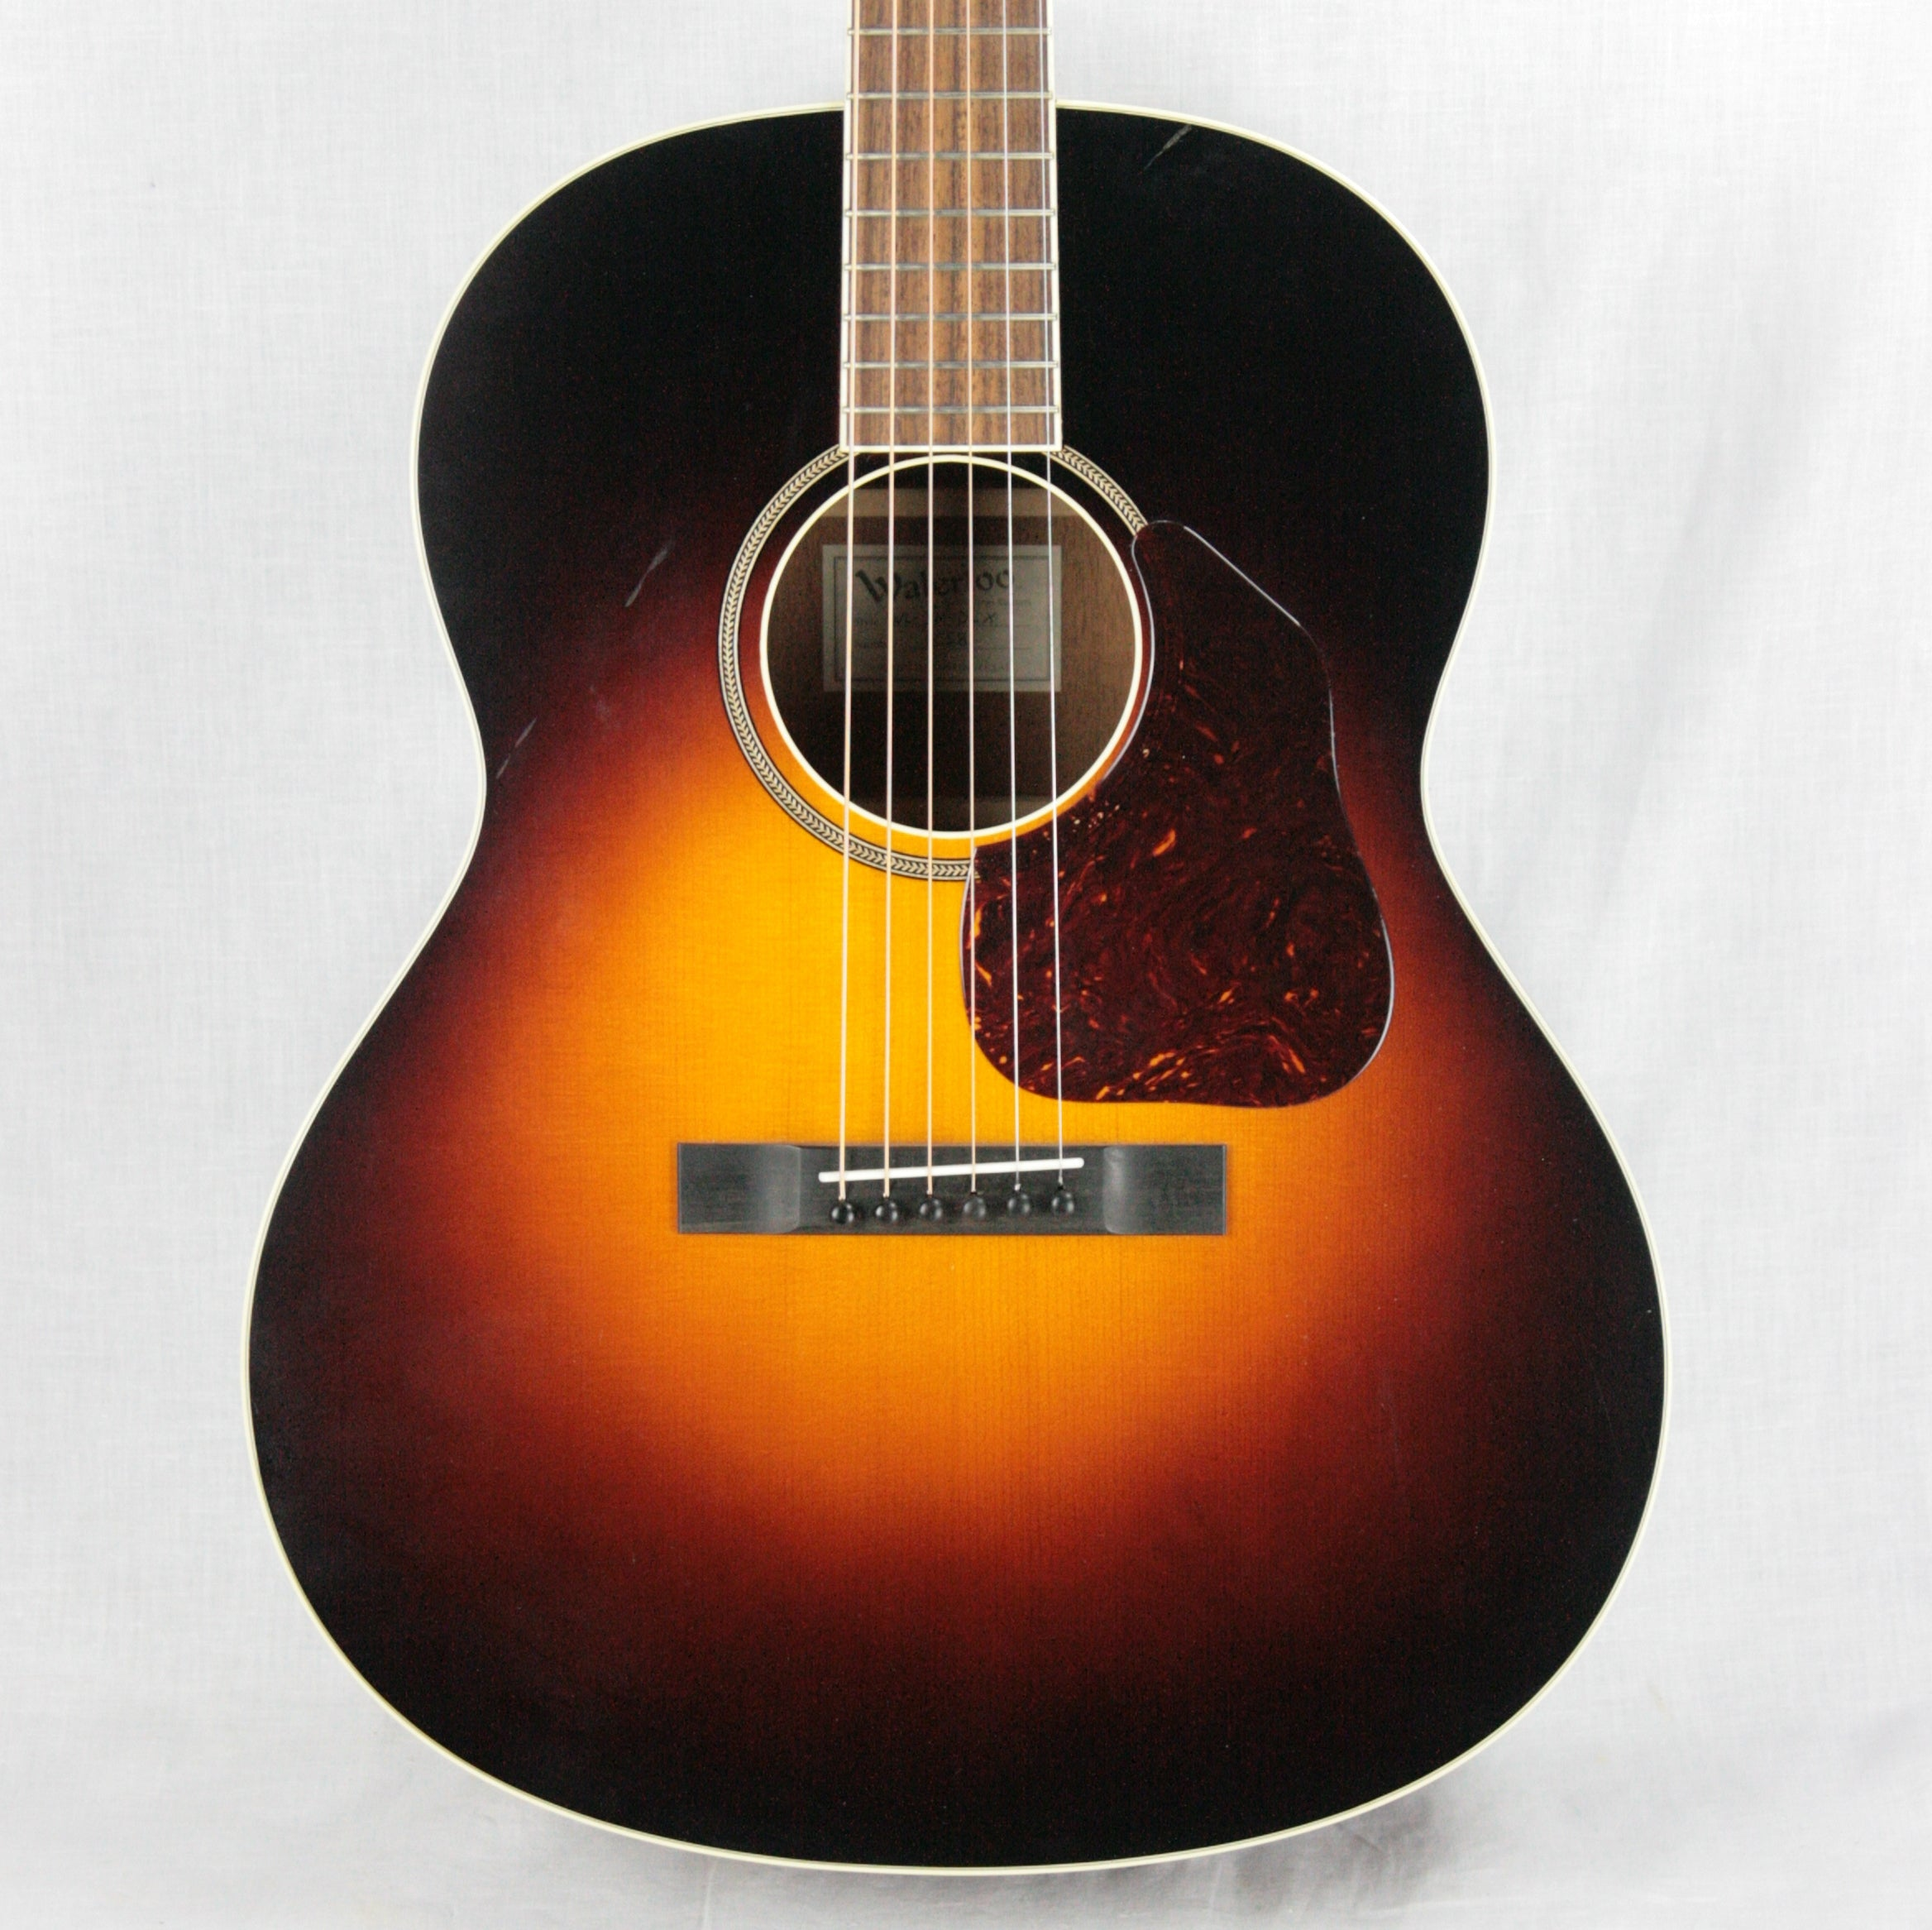 Waterloo WL-JK Deluxe Jumbo King Acoustic Guitar! Sunburst Collings Recording King type